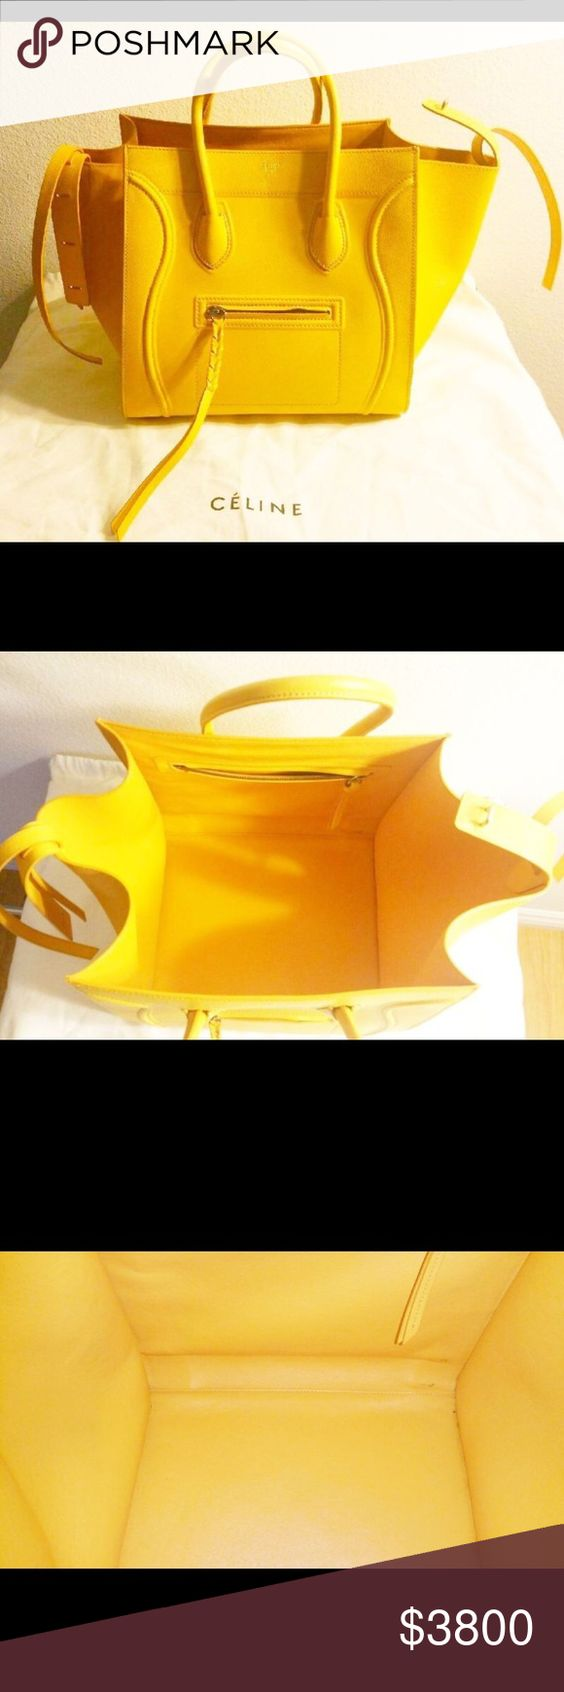 Celine Phantom Large Luggage Tote In Yellow (NEW) Celine phantom tote. Grained leather. New. Yellow in color. Celine Bags Totes